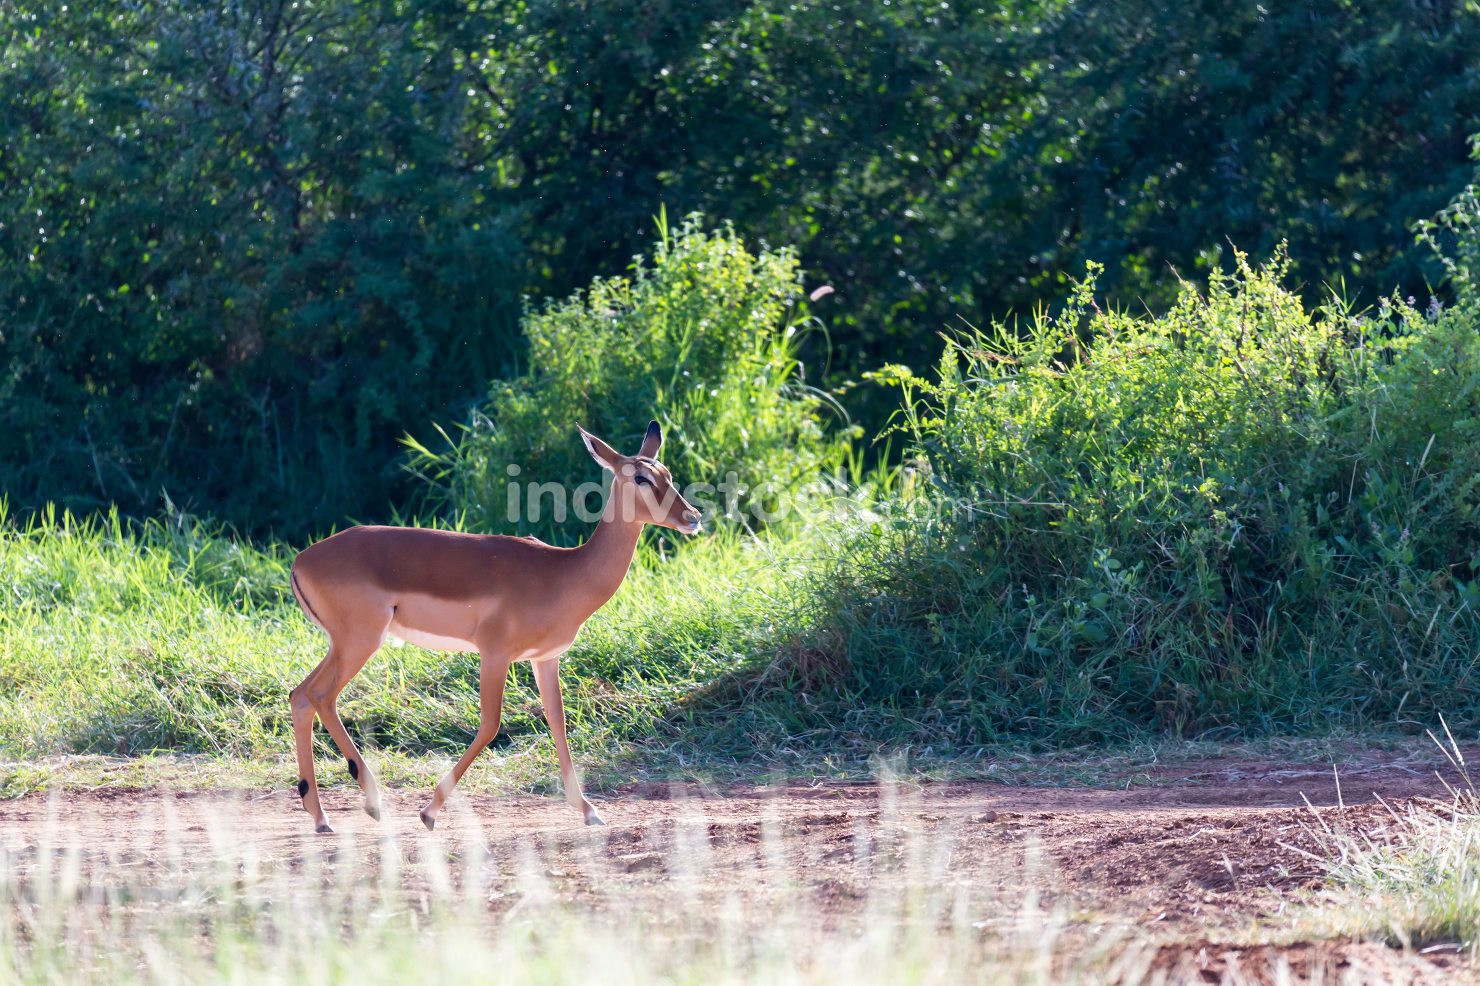 A Grant Gazelle stands in the middle of the grassy landscape of